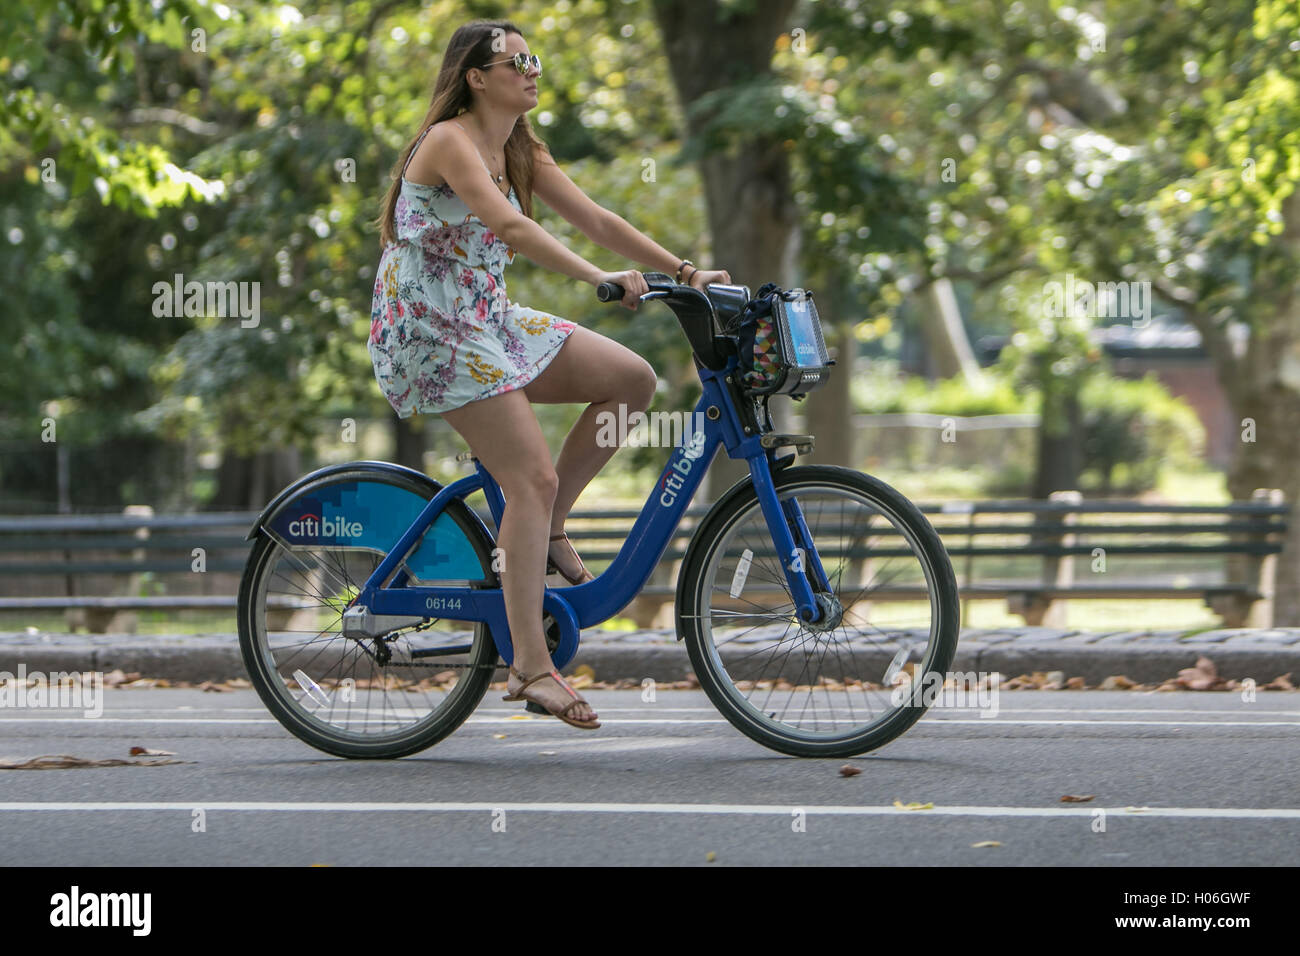 A Young Woman Is Riding A Citibike In Central Park Stock Photo